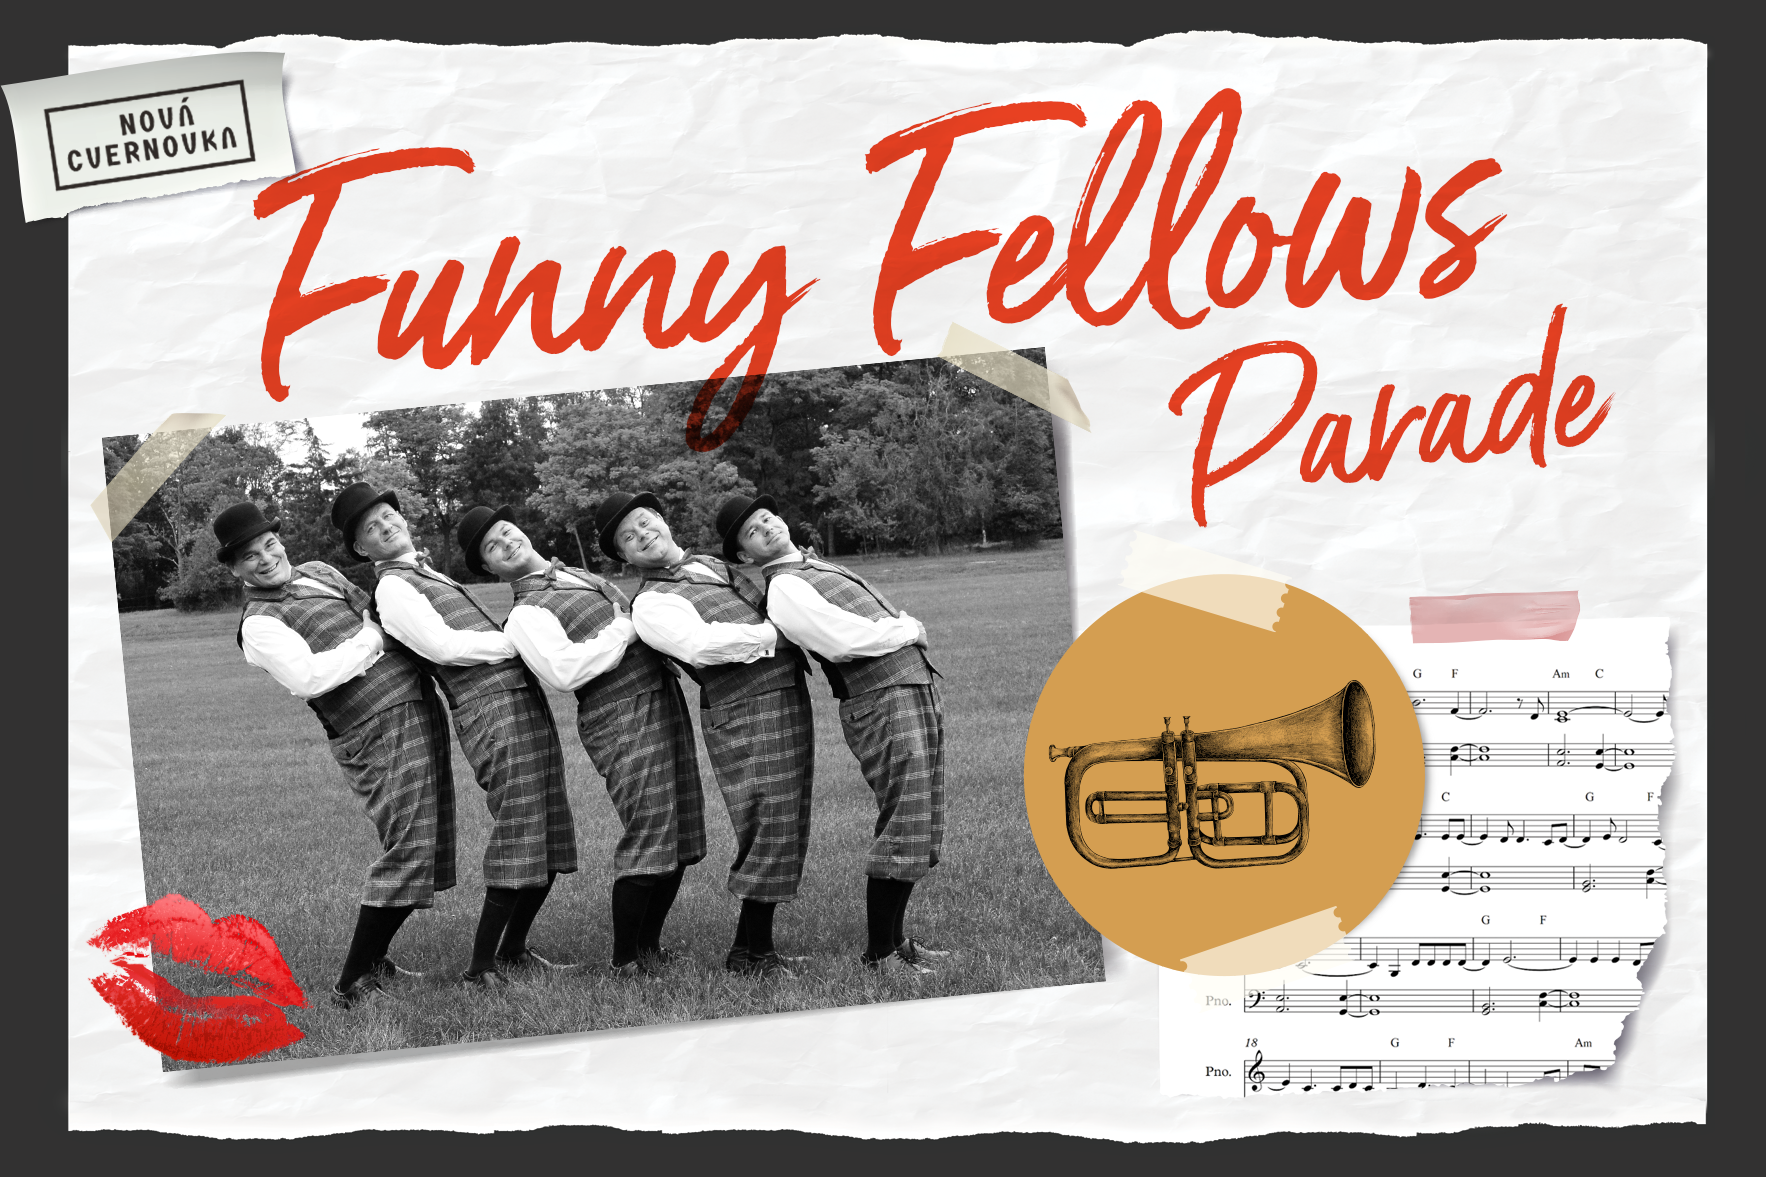 Funny Fellows cvernovka